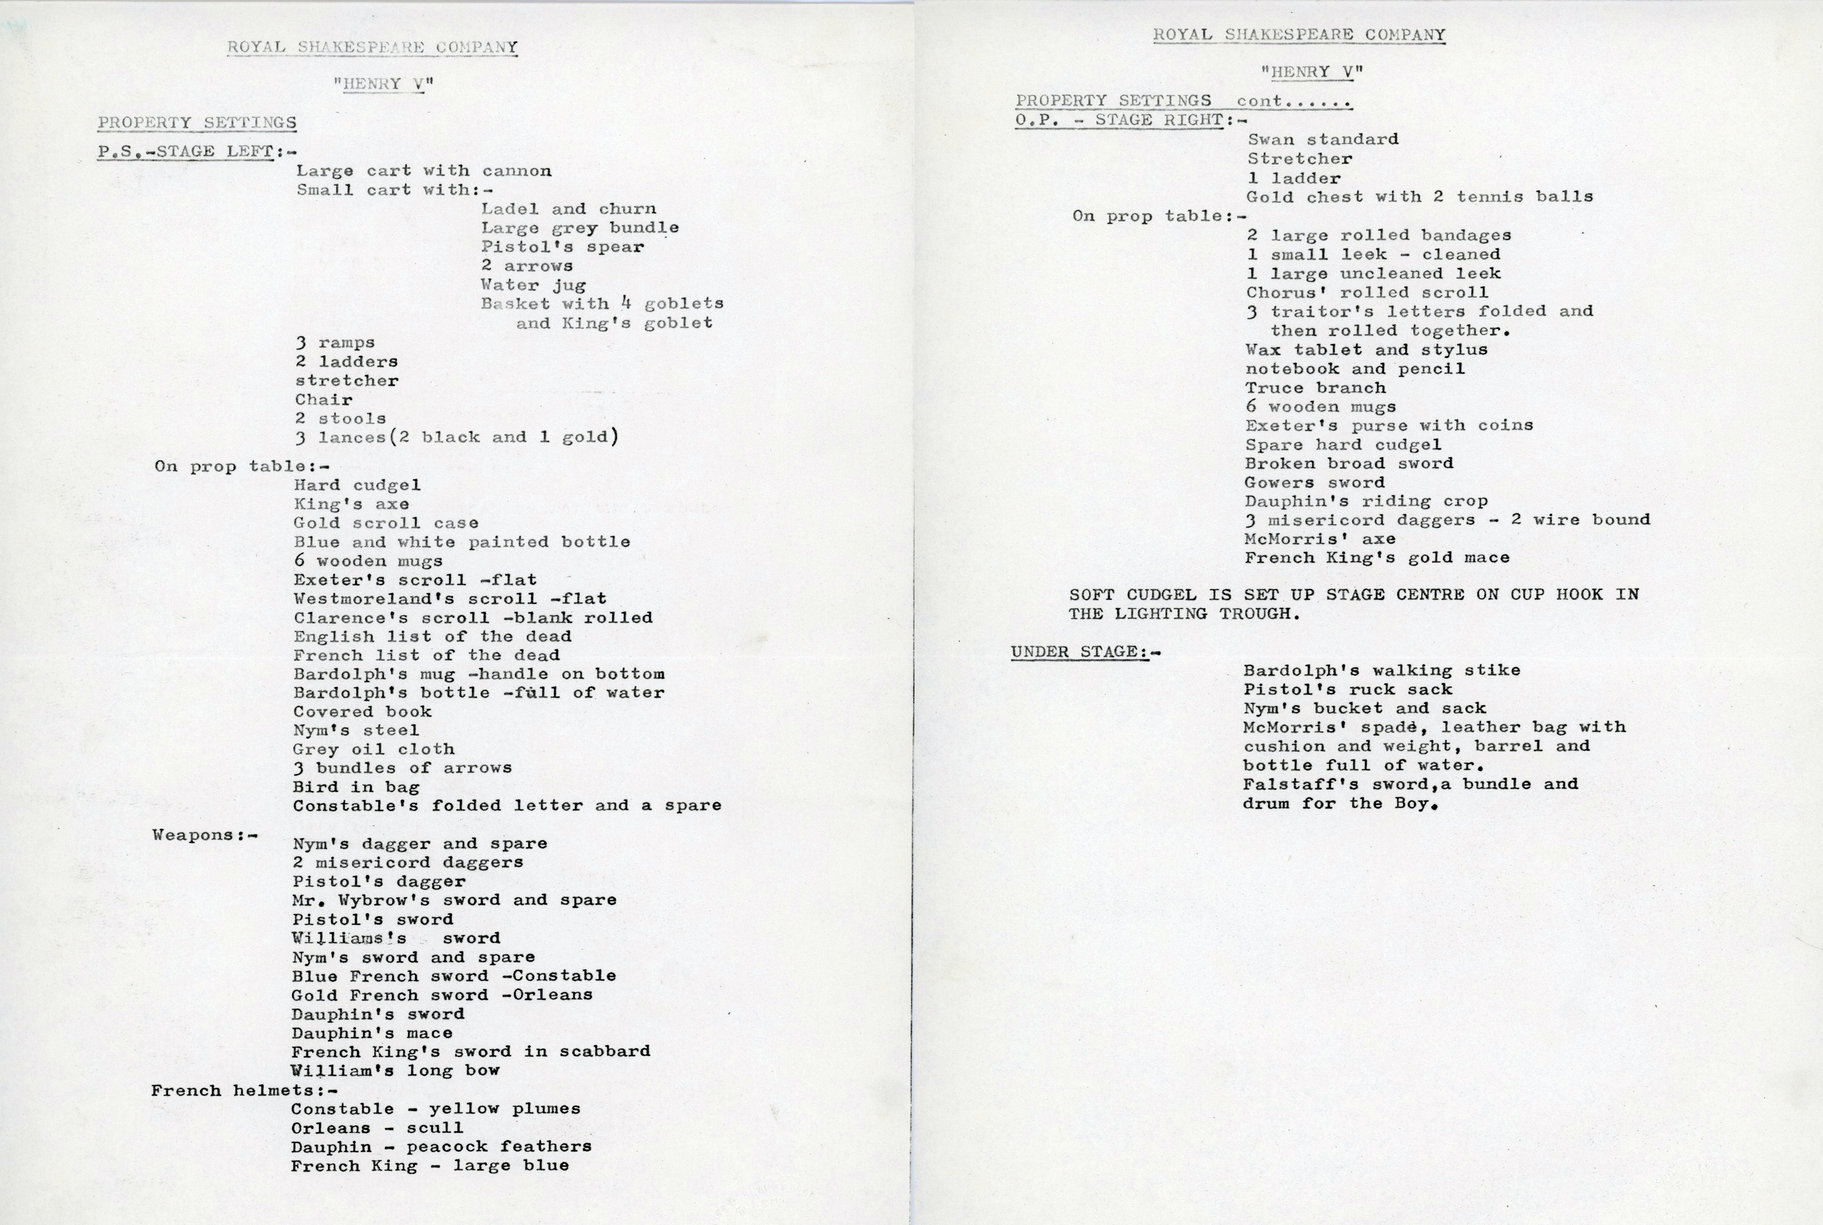 Typewritten list of props for Henry V 1975